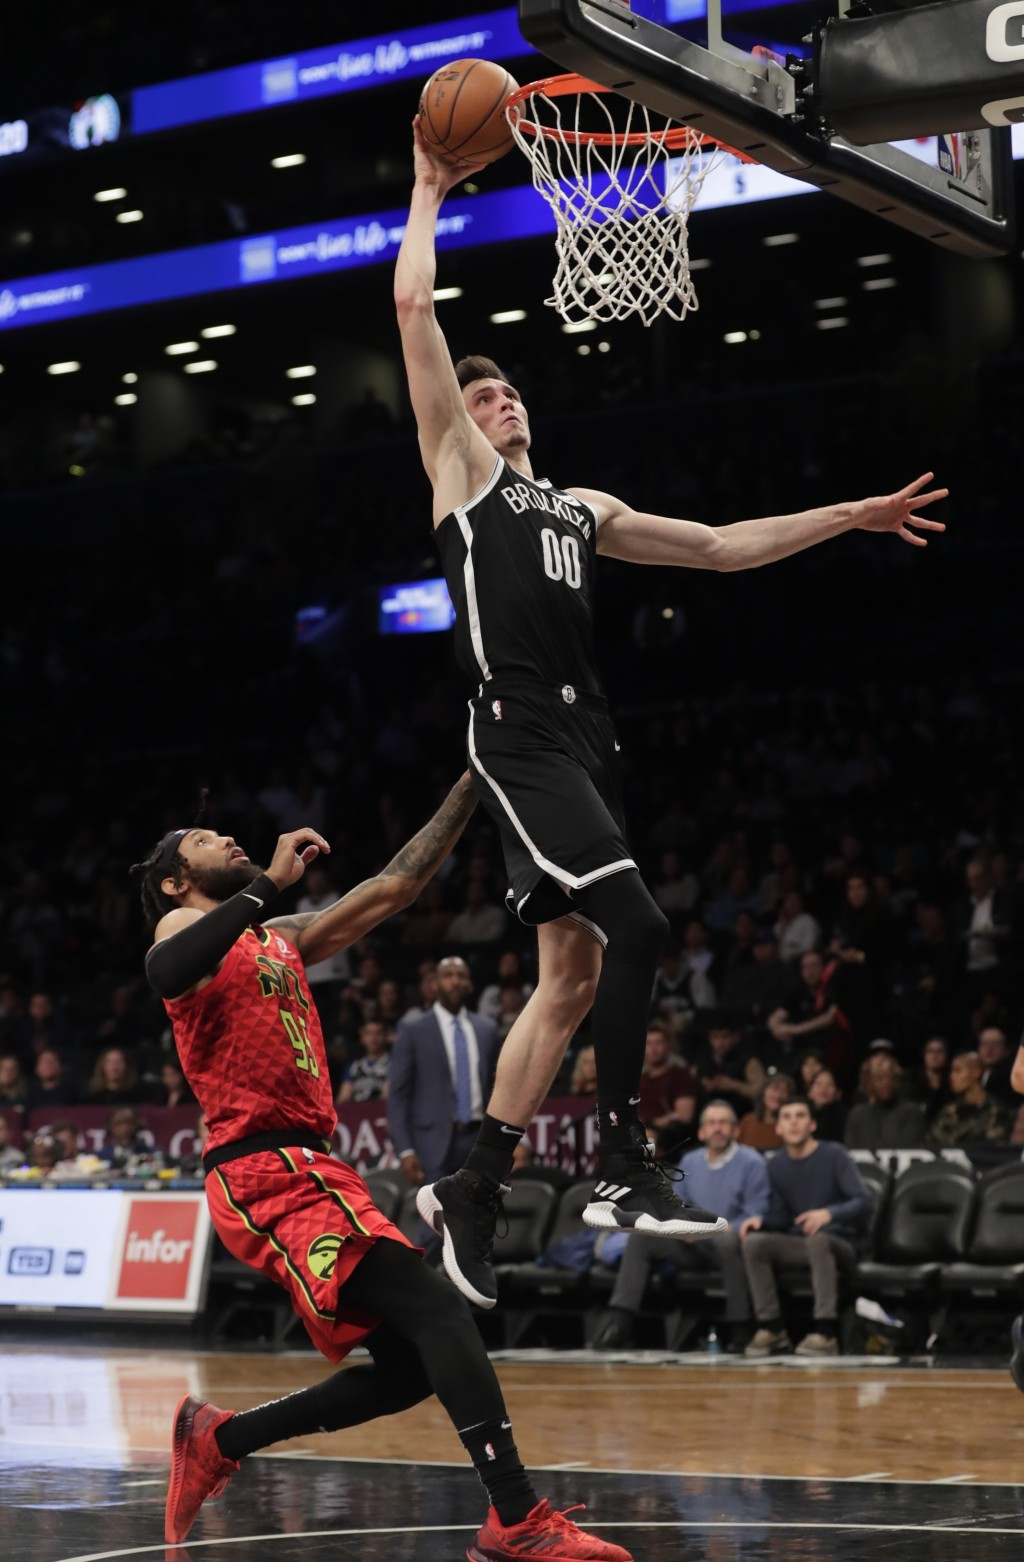 Brooklyn Nets' Rodions Kurucs (00) dunks in front of Atlanta Hawks' DeAndre' Bembry (95) during the second half of an NBA basketball game Wednesday, J...